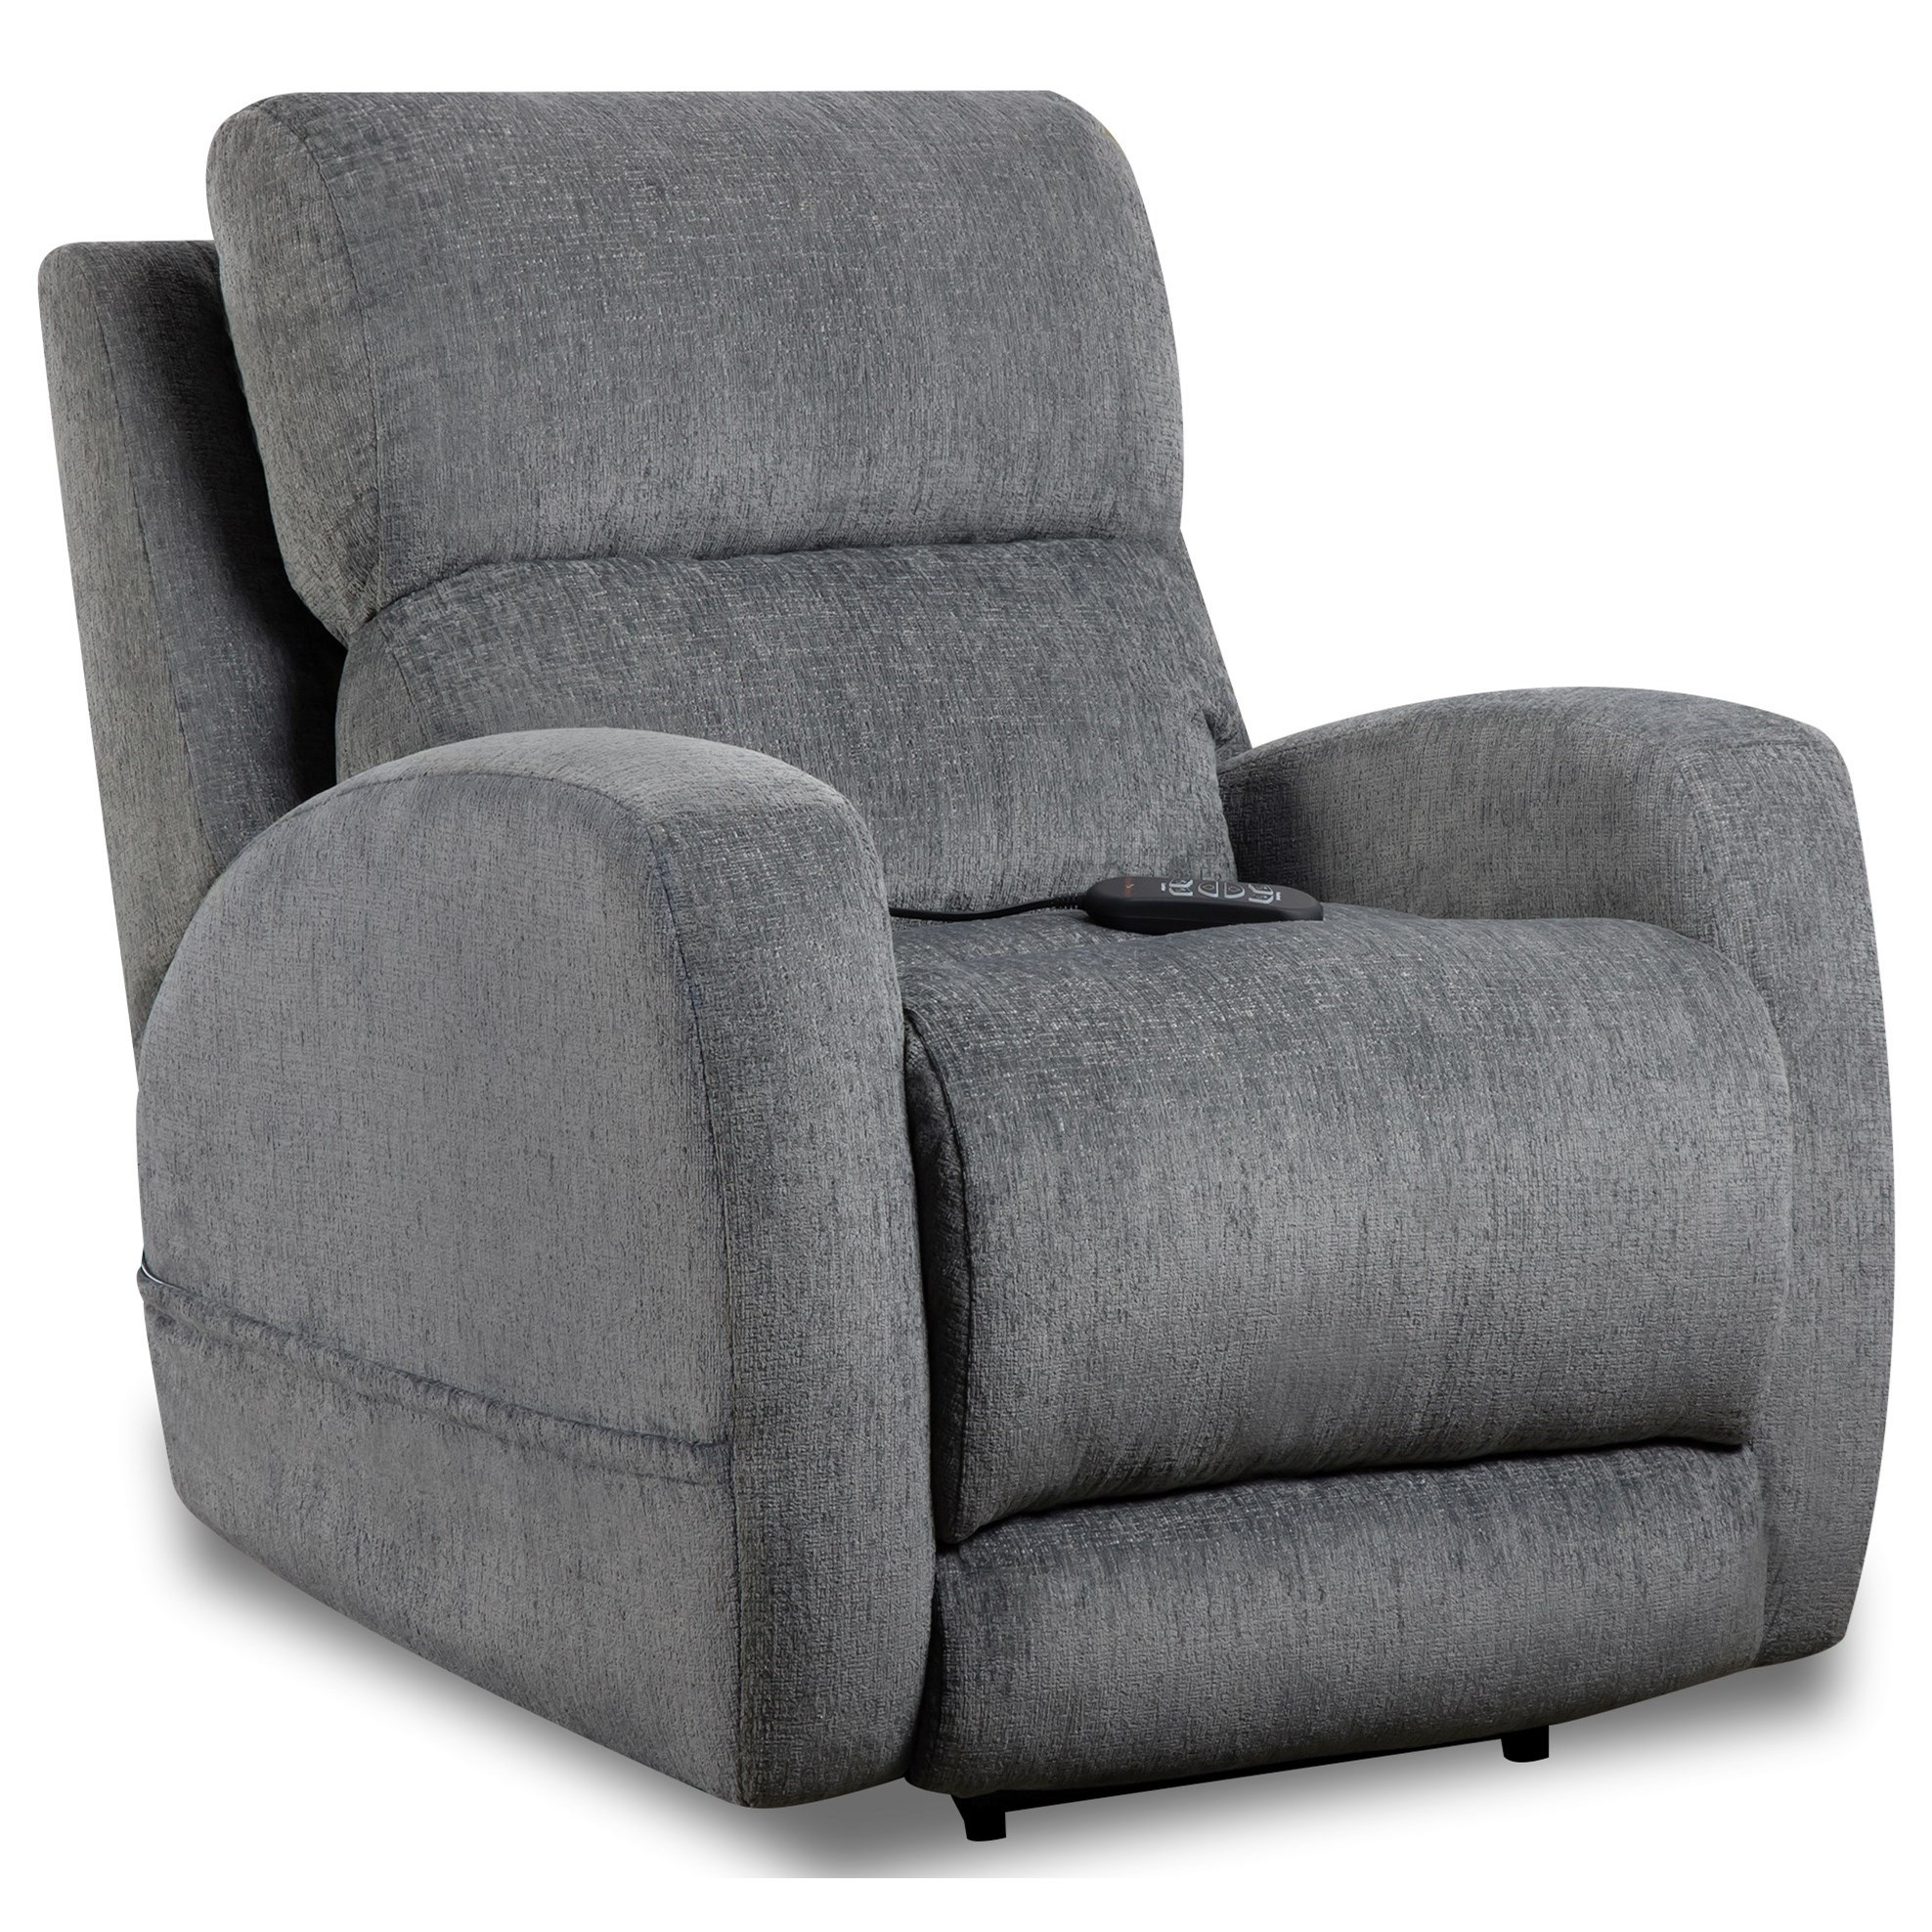 Sterling Power Wall-Saver Recliner by HomeStretch at Standard Furniture